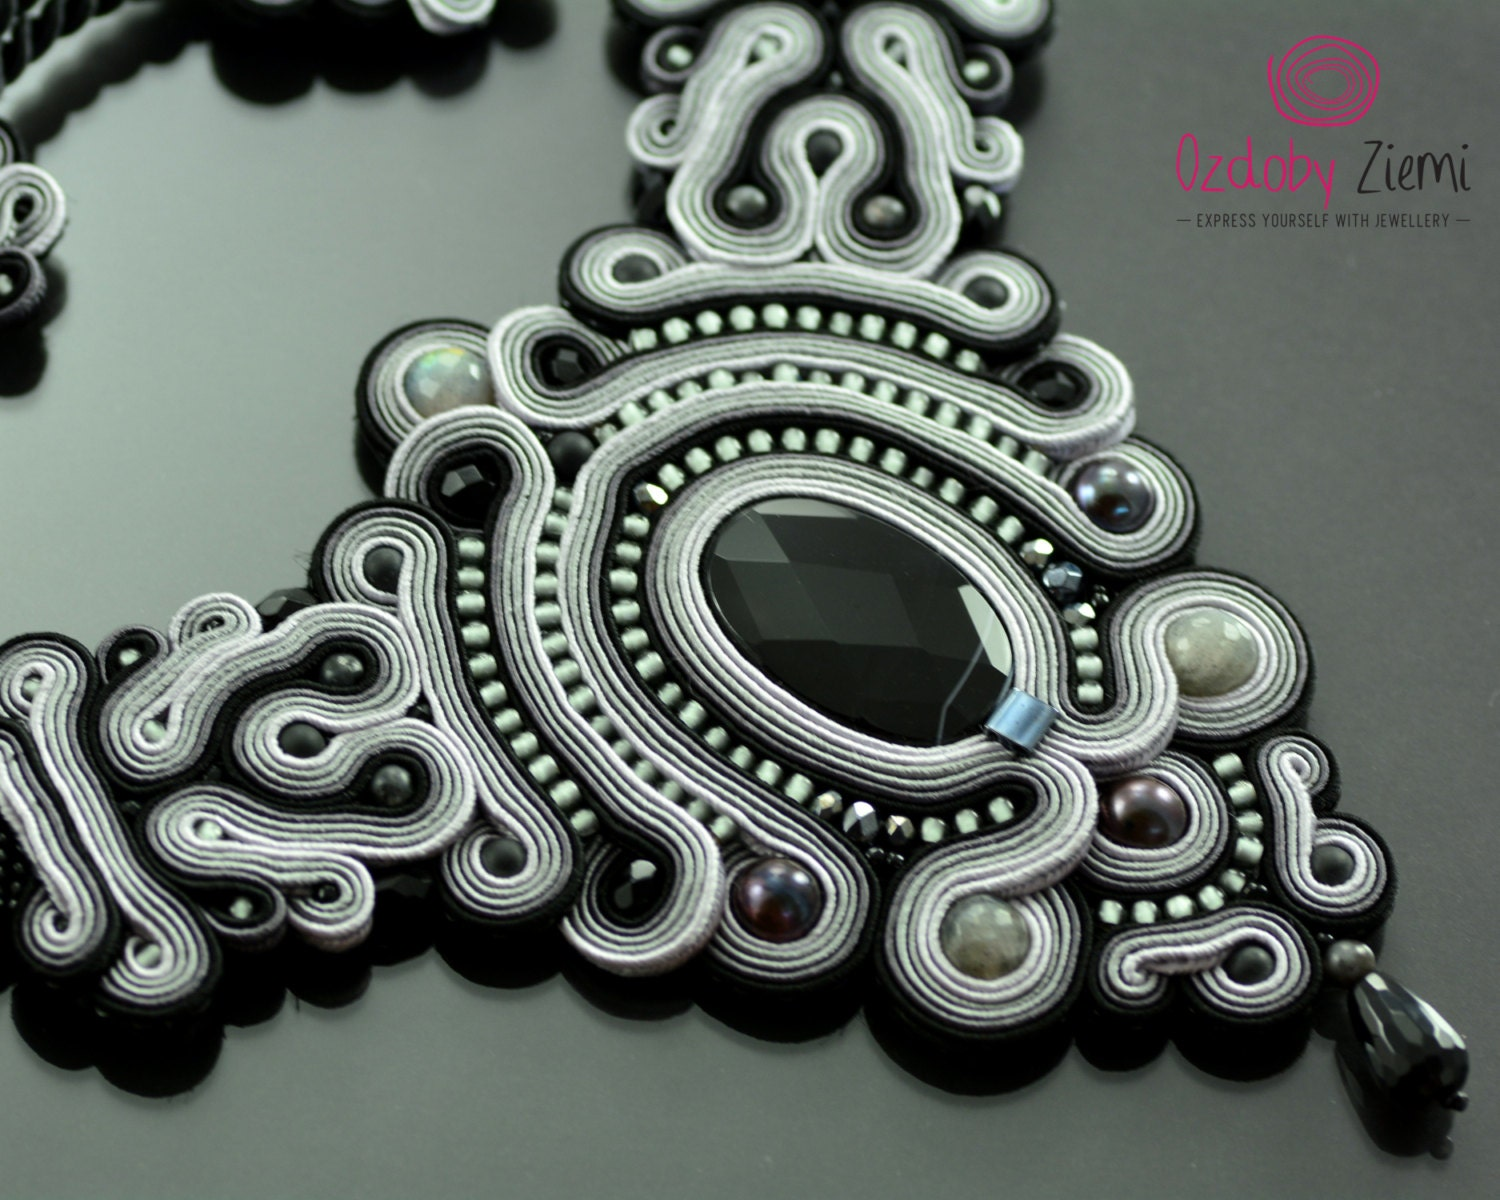 Soutache Necklace Kelabu, Will Add Glamour To Any Outfit Very Elegant,  Effective,